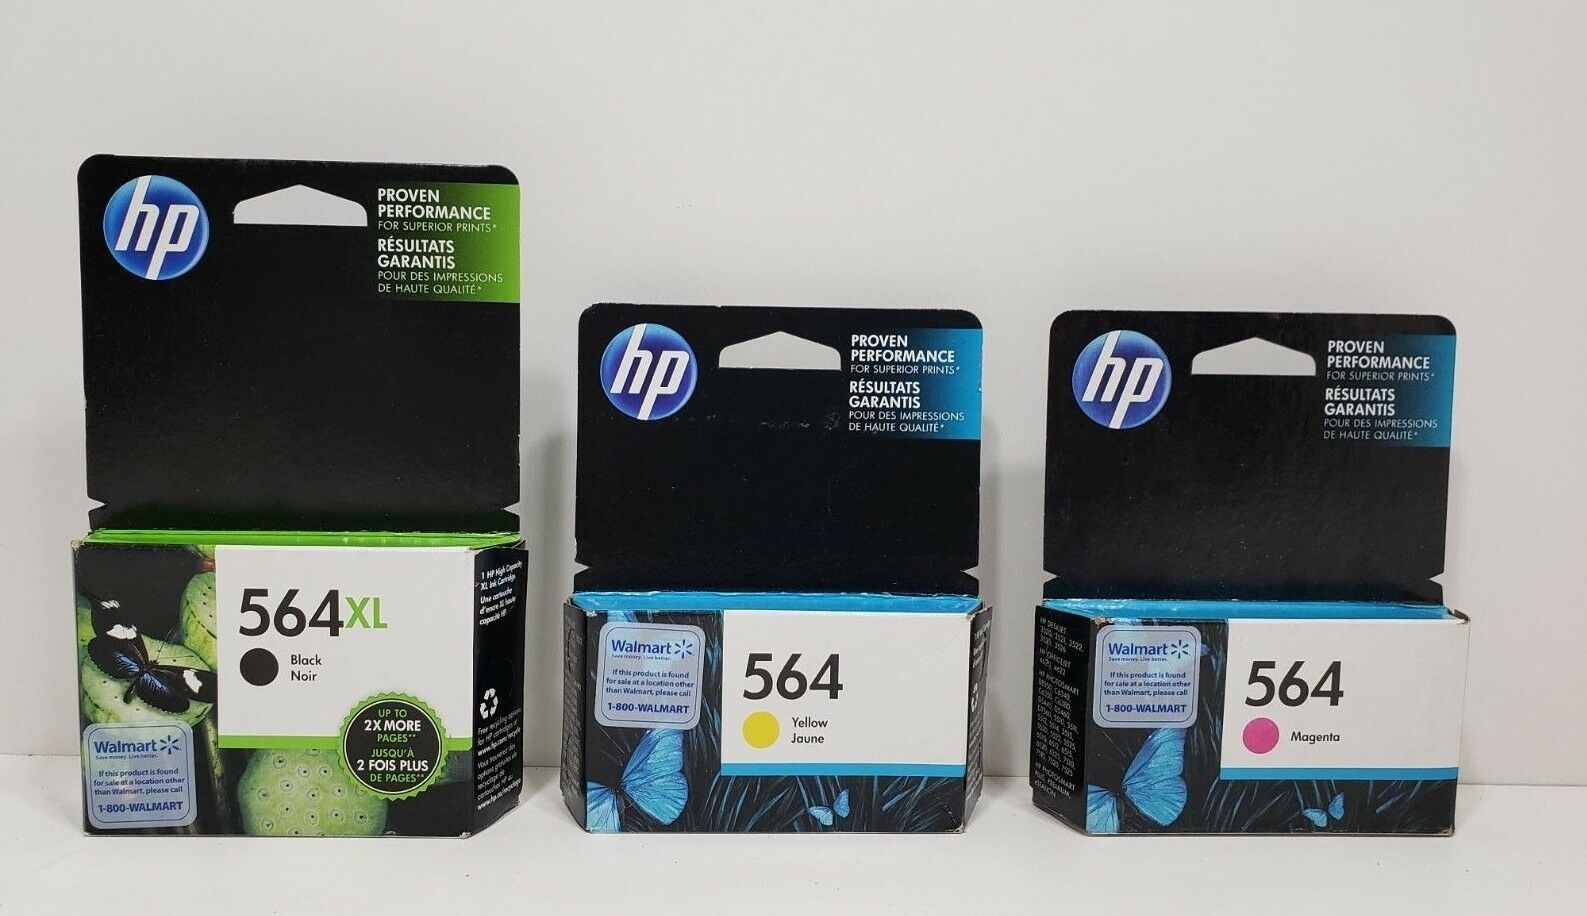 HP 564 3 Ink Cartridges. 2 Expired 2018, 1 Expires Feb. 2019. Factory Sealed